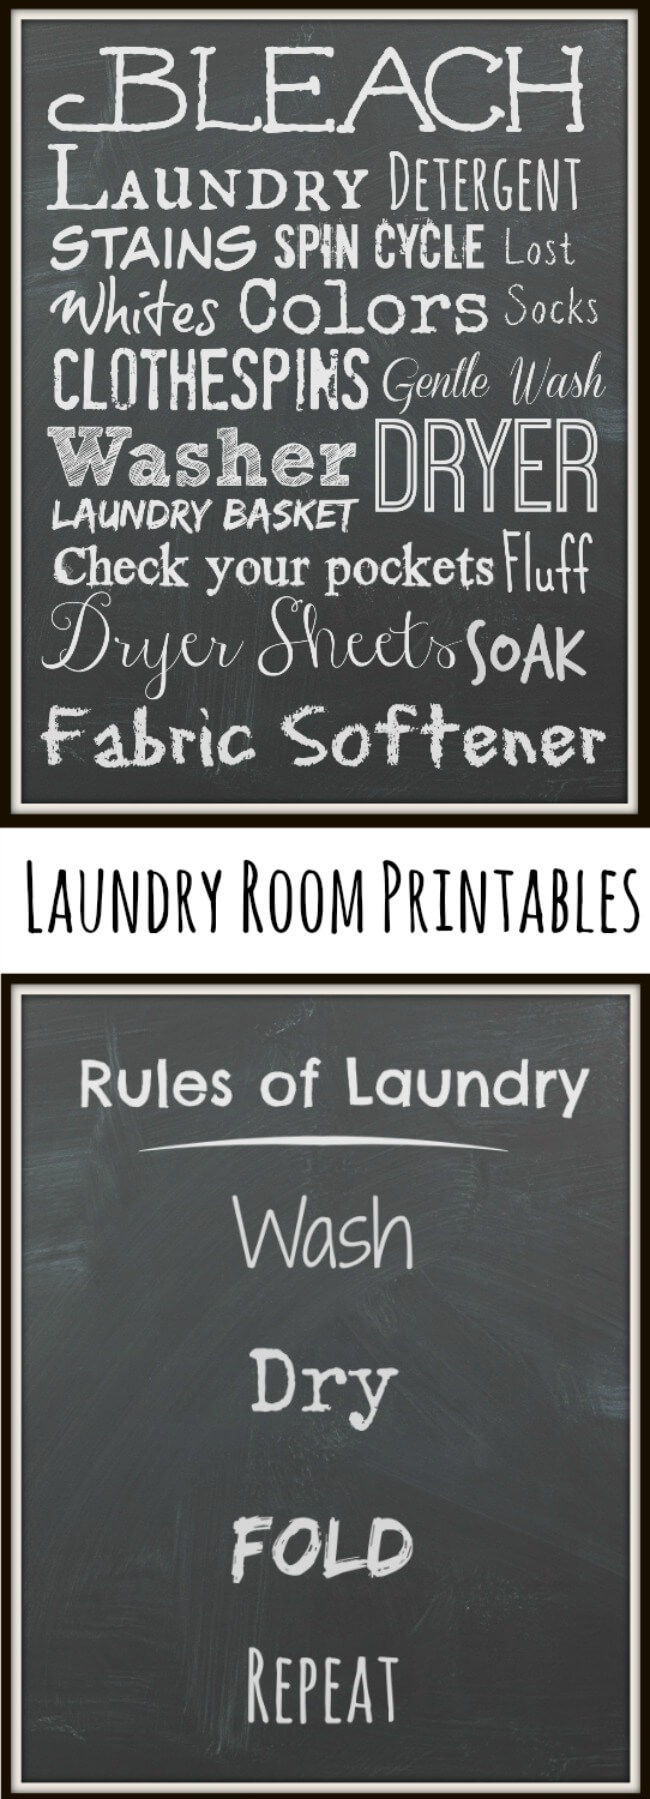 P&G Free & Clean Laundry Products - for sensitive skin. FREE Chalkboard Laundry Printables! #IC #ad #SecondSkincare | The TipToe Fairys